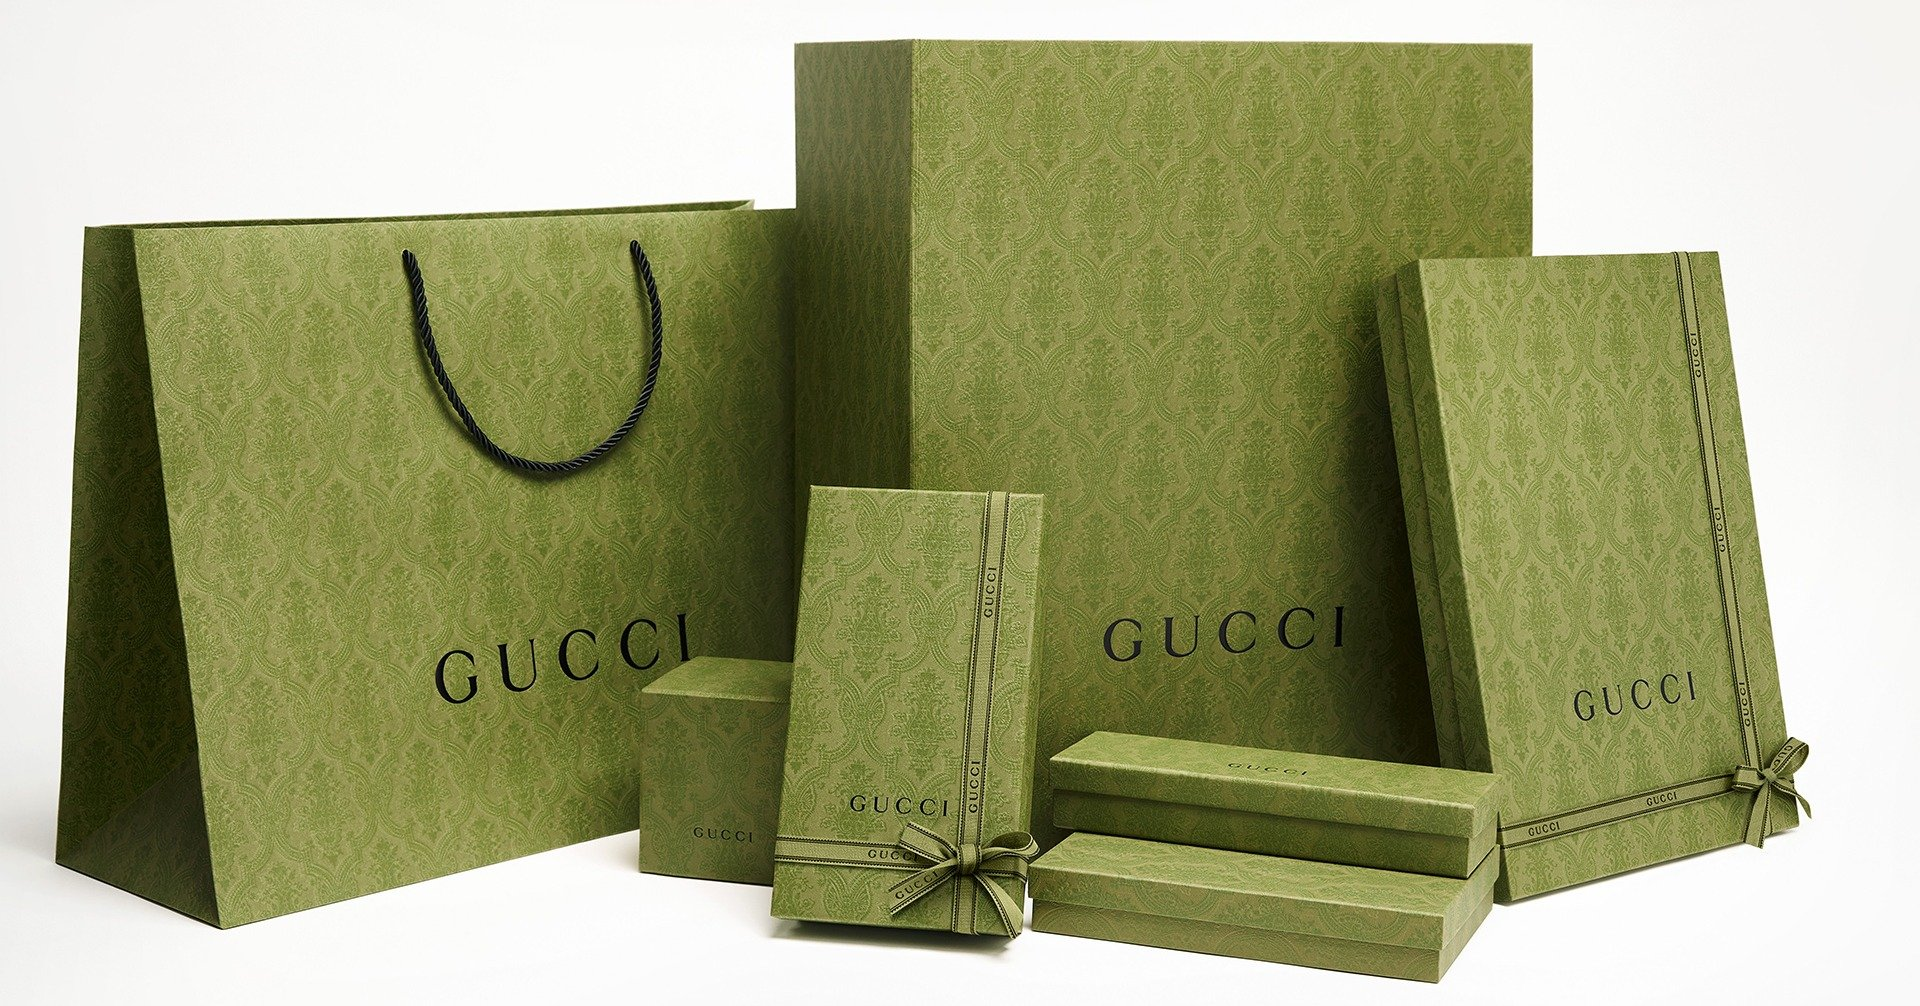 Ethical Packaging and Premium Branding - Can You Have Both?